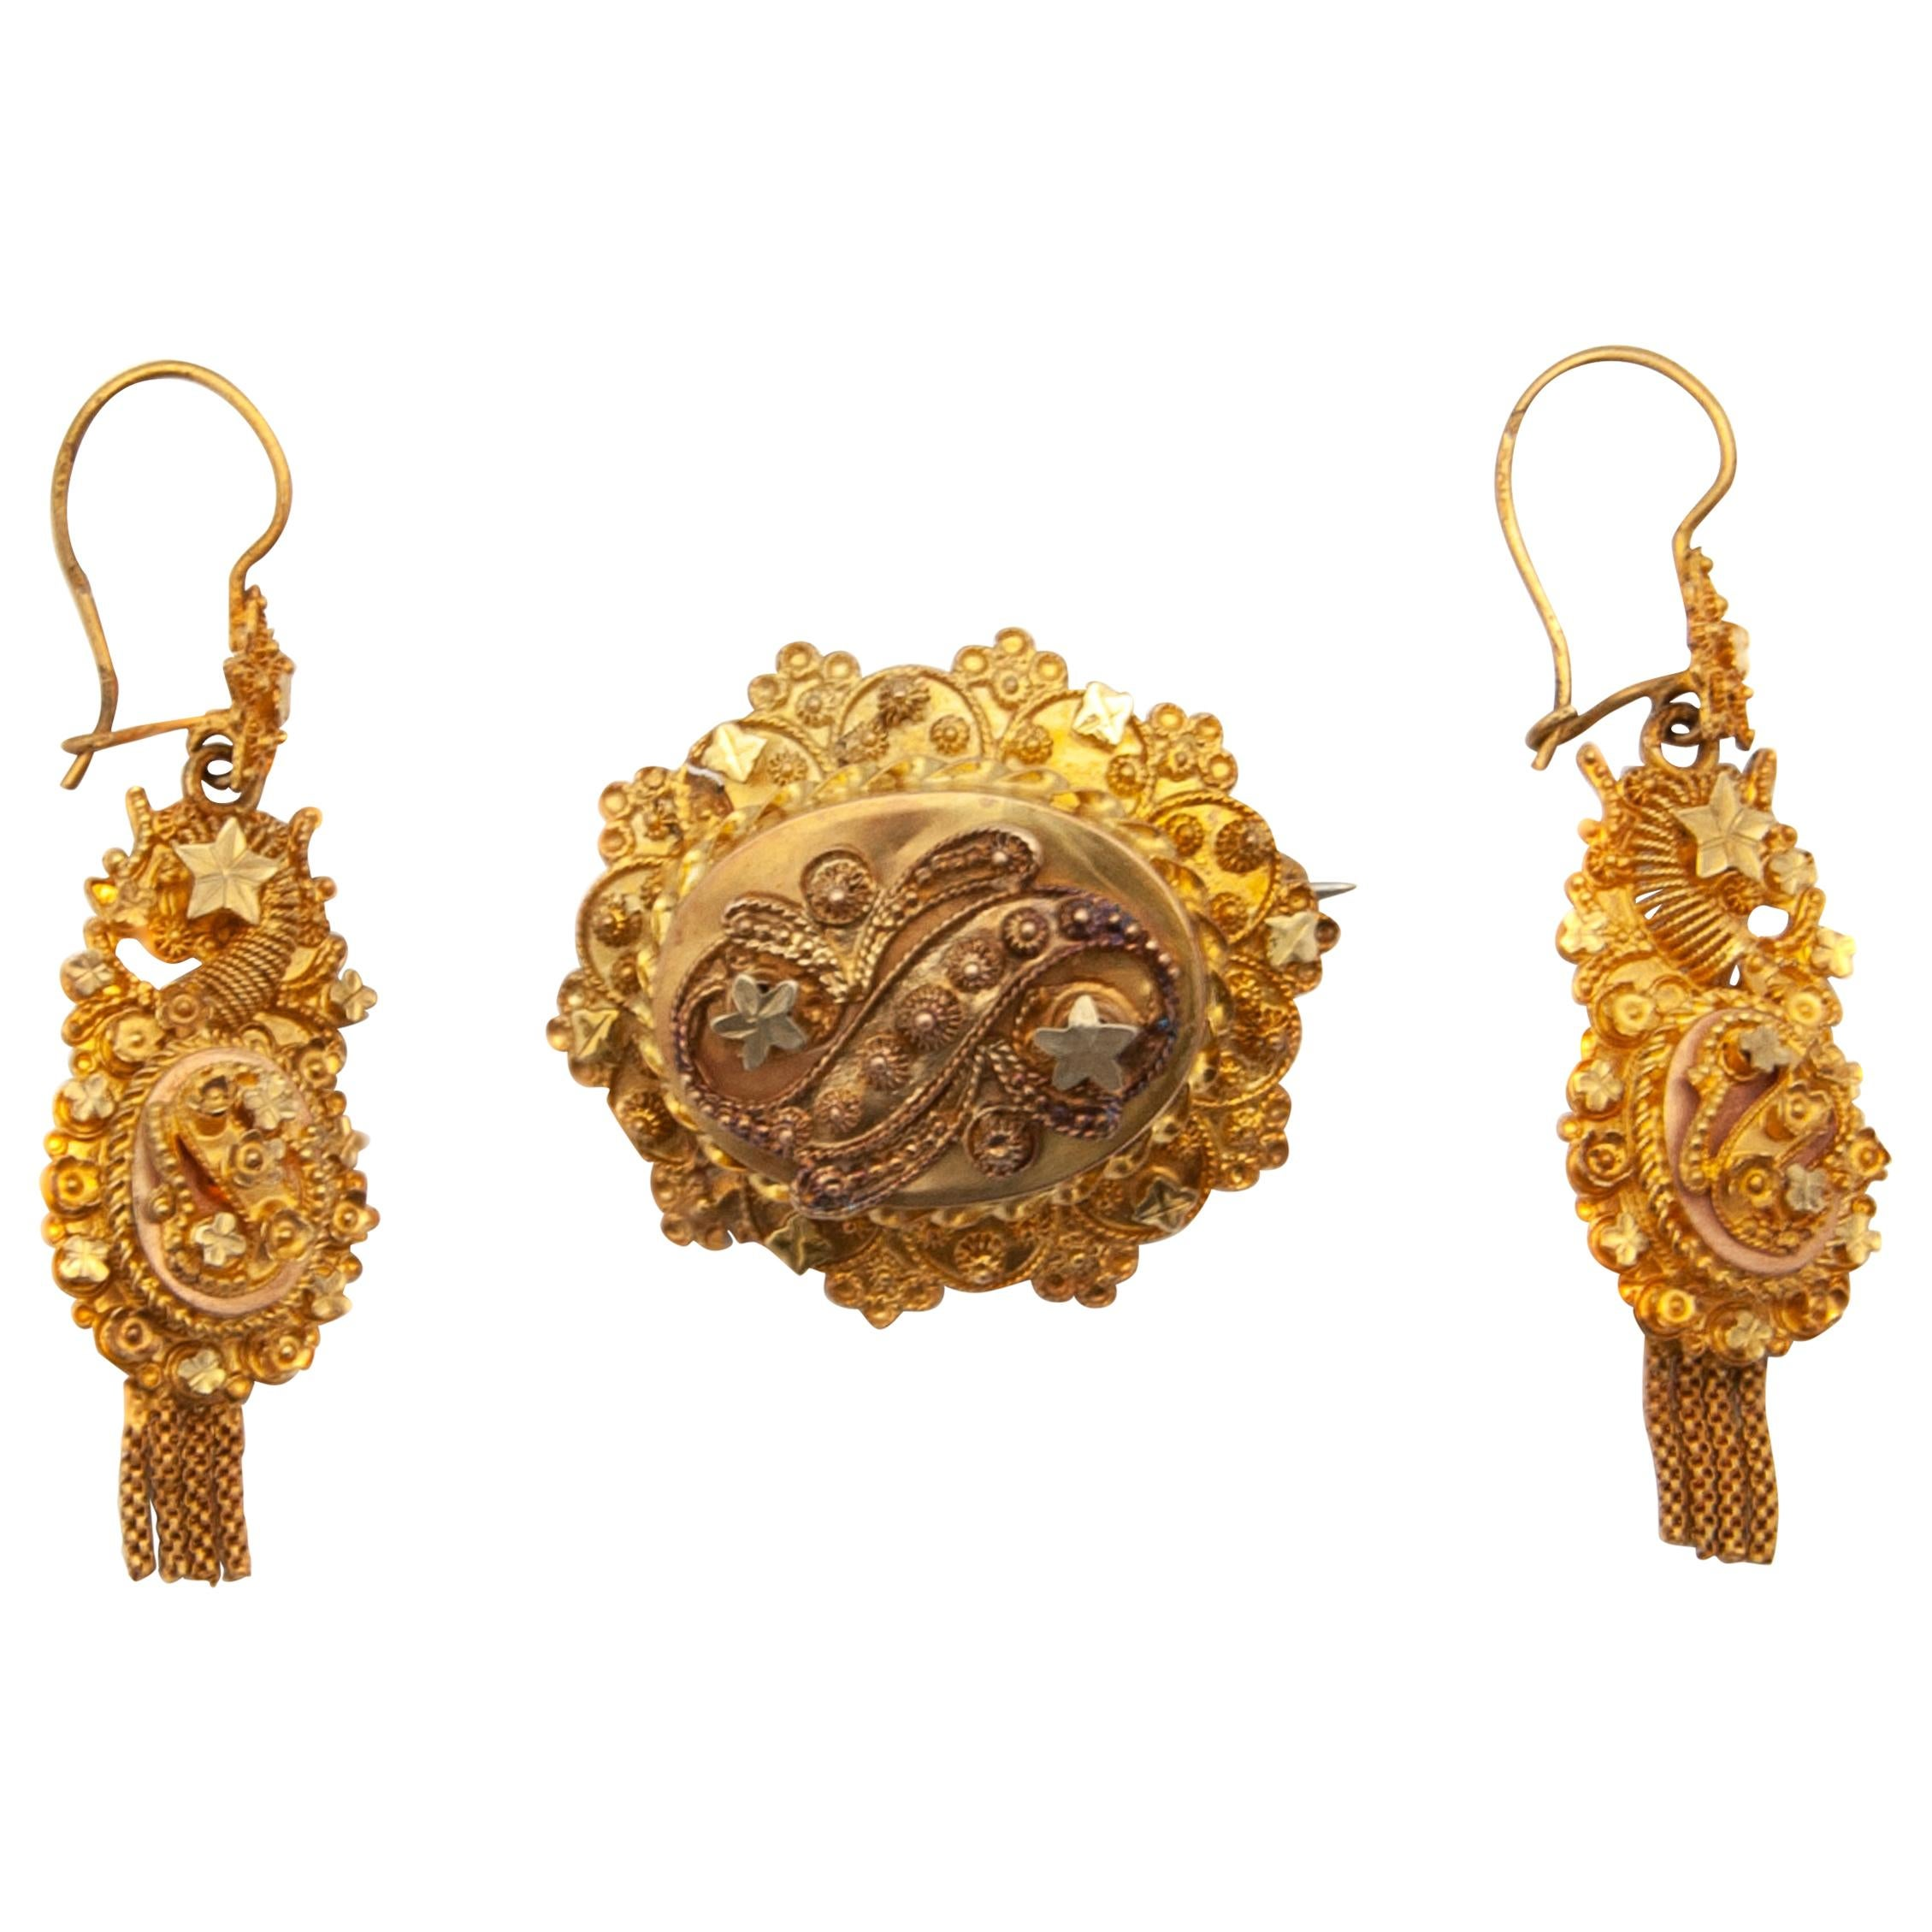 14 Karat Yellow Gold Cannetille Earrings and Brooch Jewelry Set